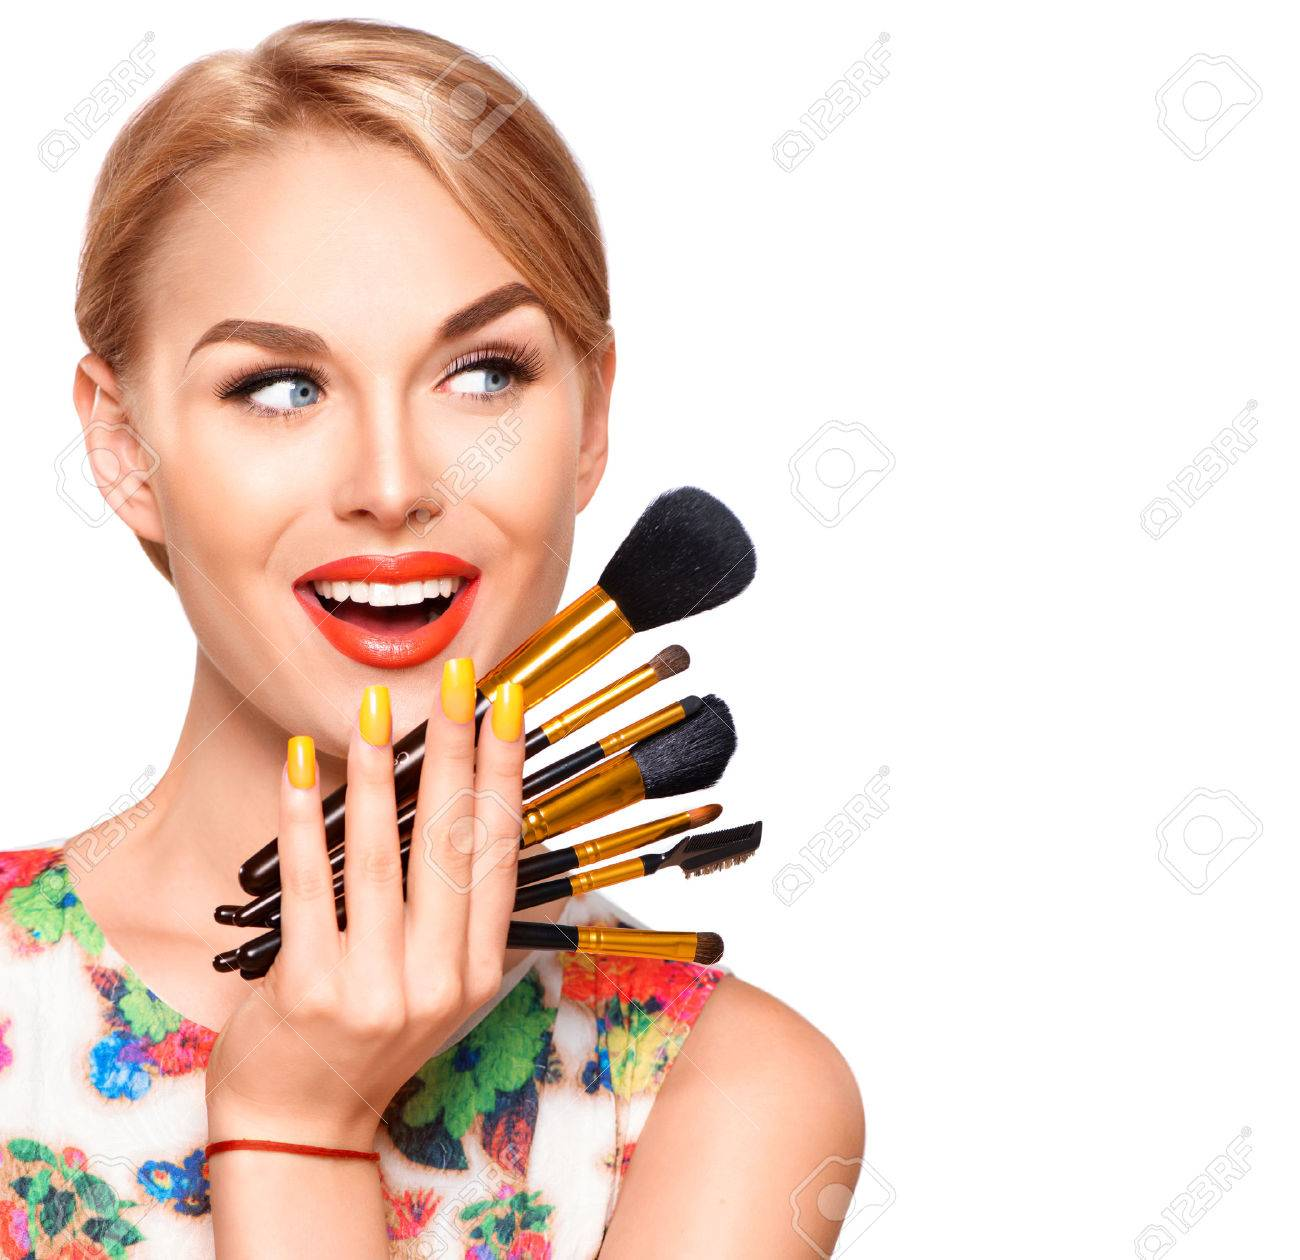 Beauty woman with makeup brushes. Applying holiday makeup - 55256201